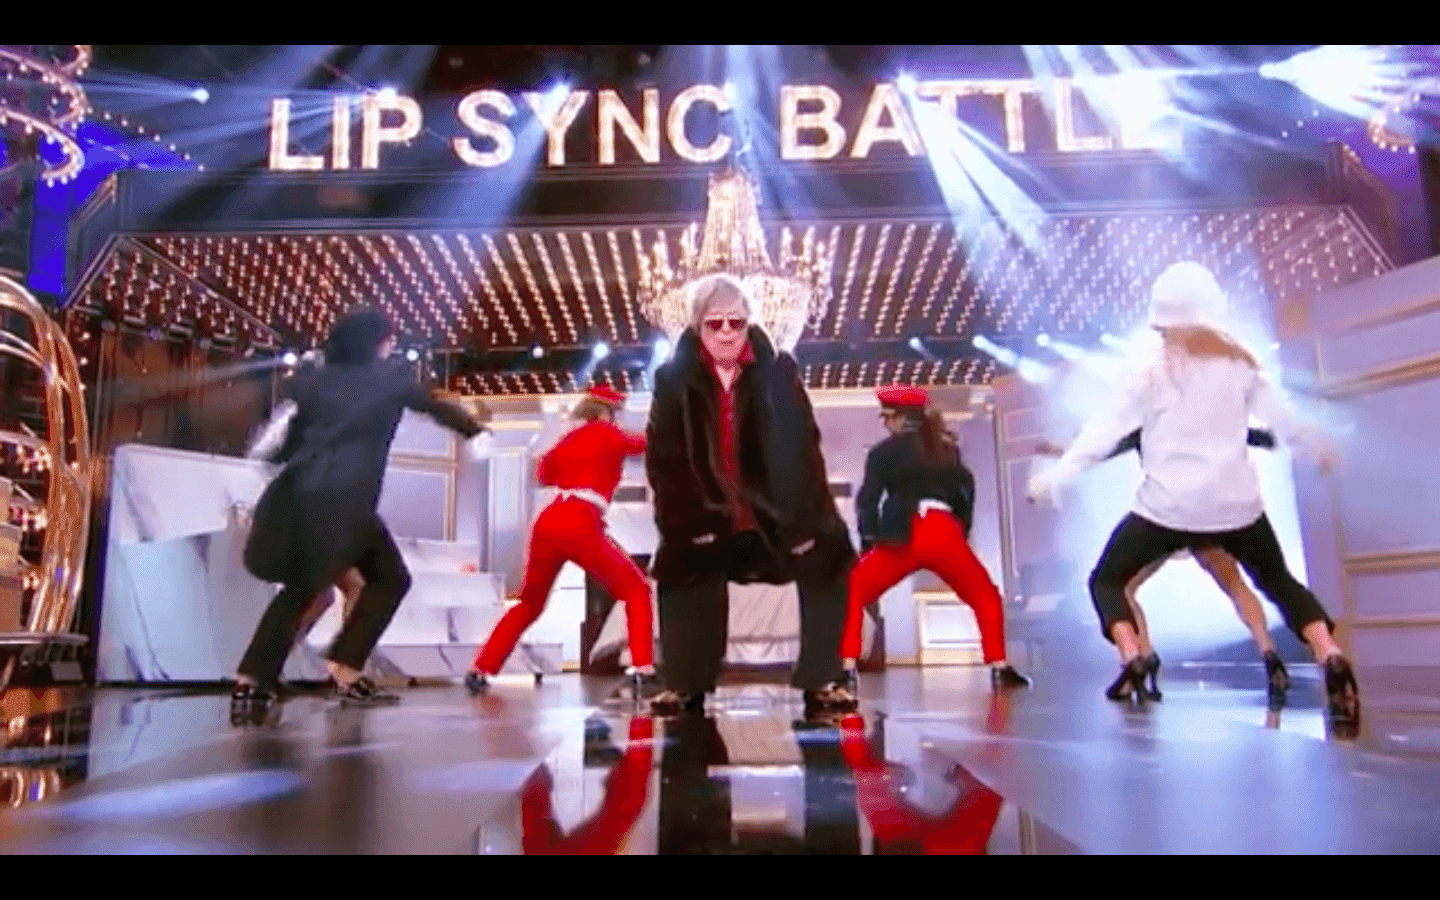 Kathy Bates takes to the Lip-sync battle stage | Image credit: Facebook/Lip-sync battle